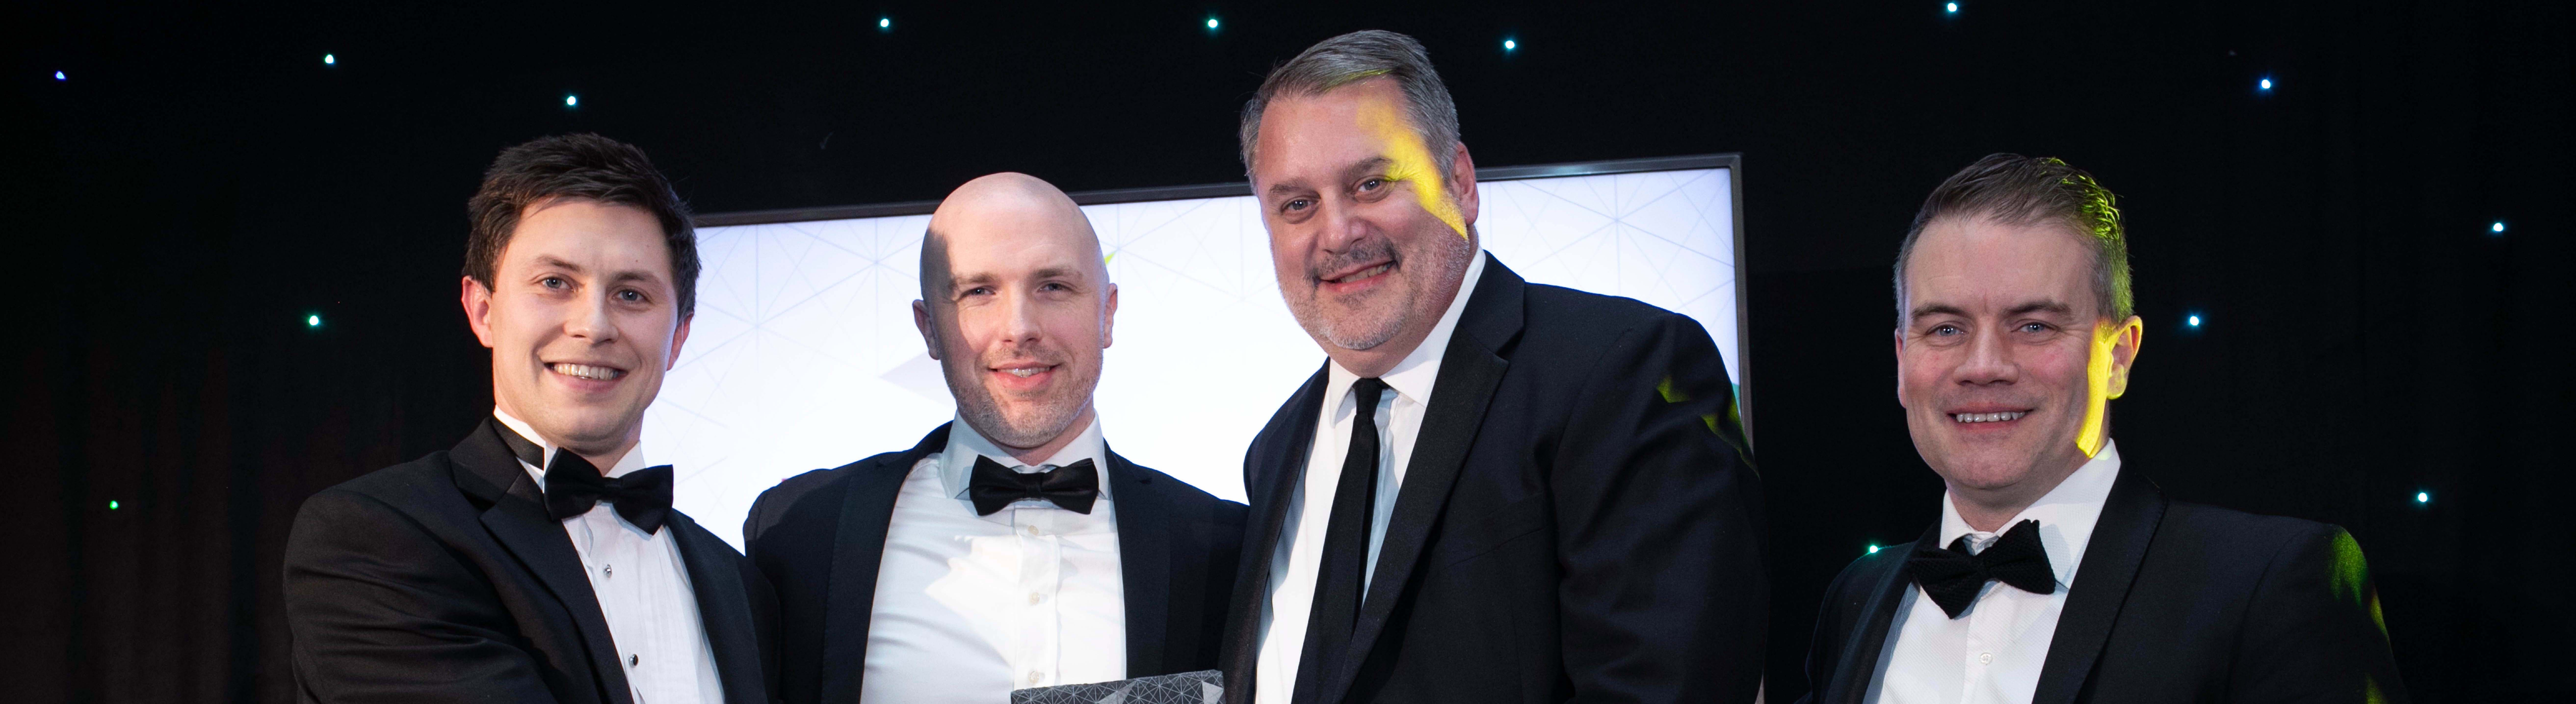 Sodexo and Microsoft partnership wins at 2020 FM Awards